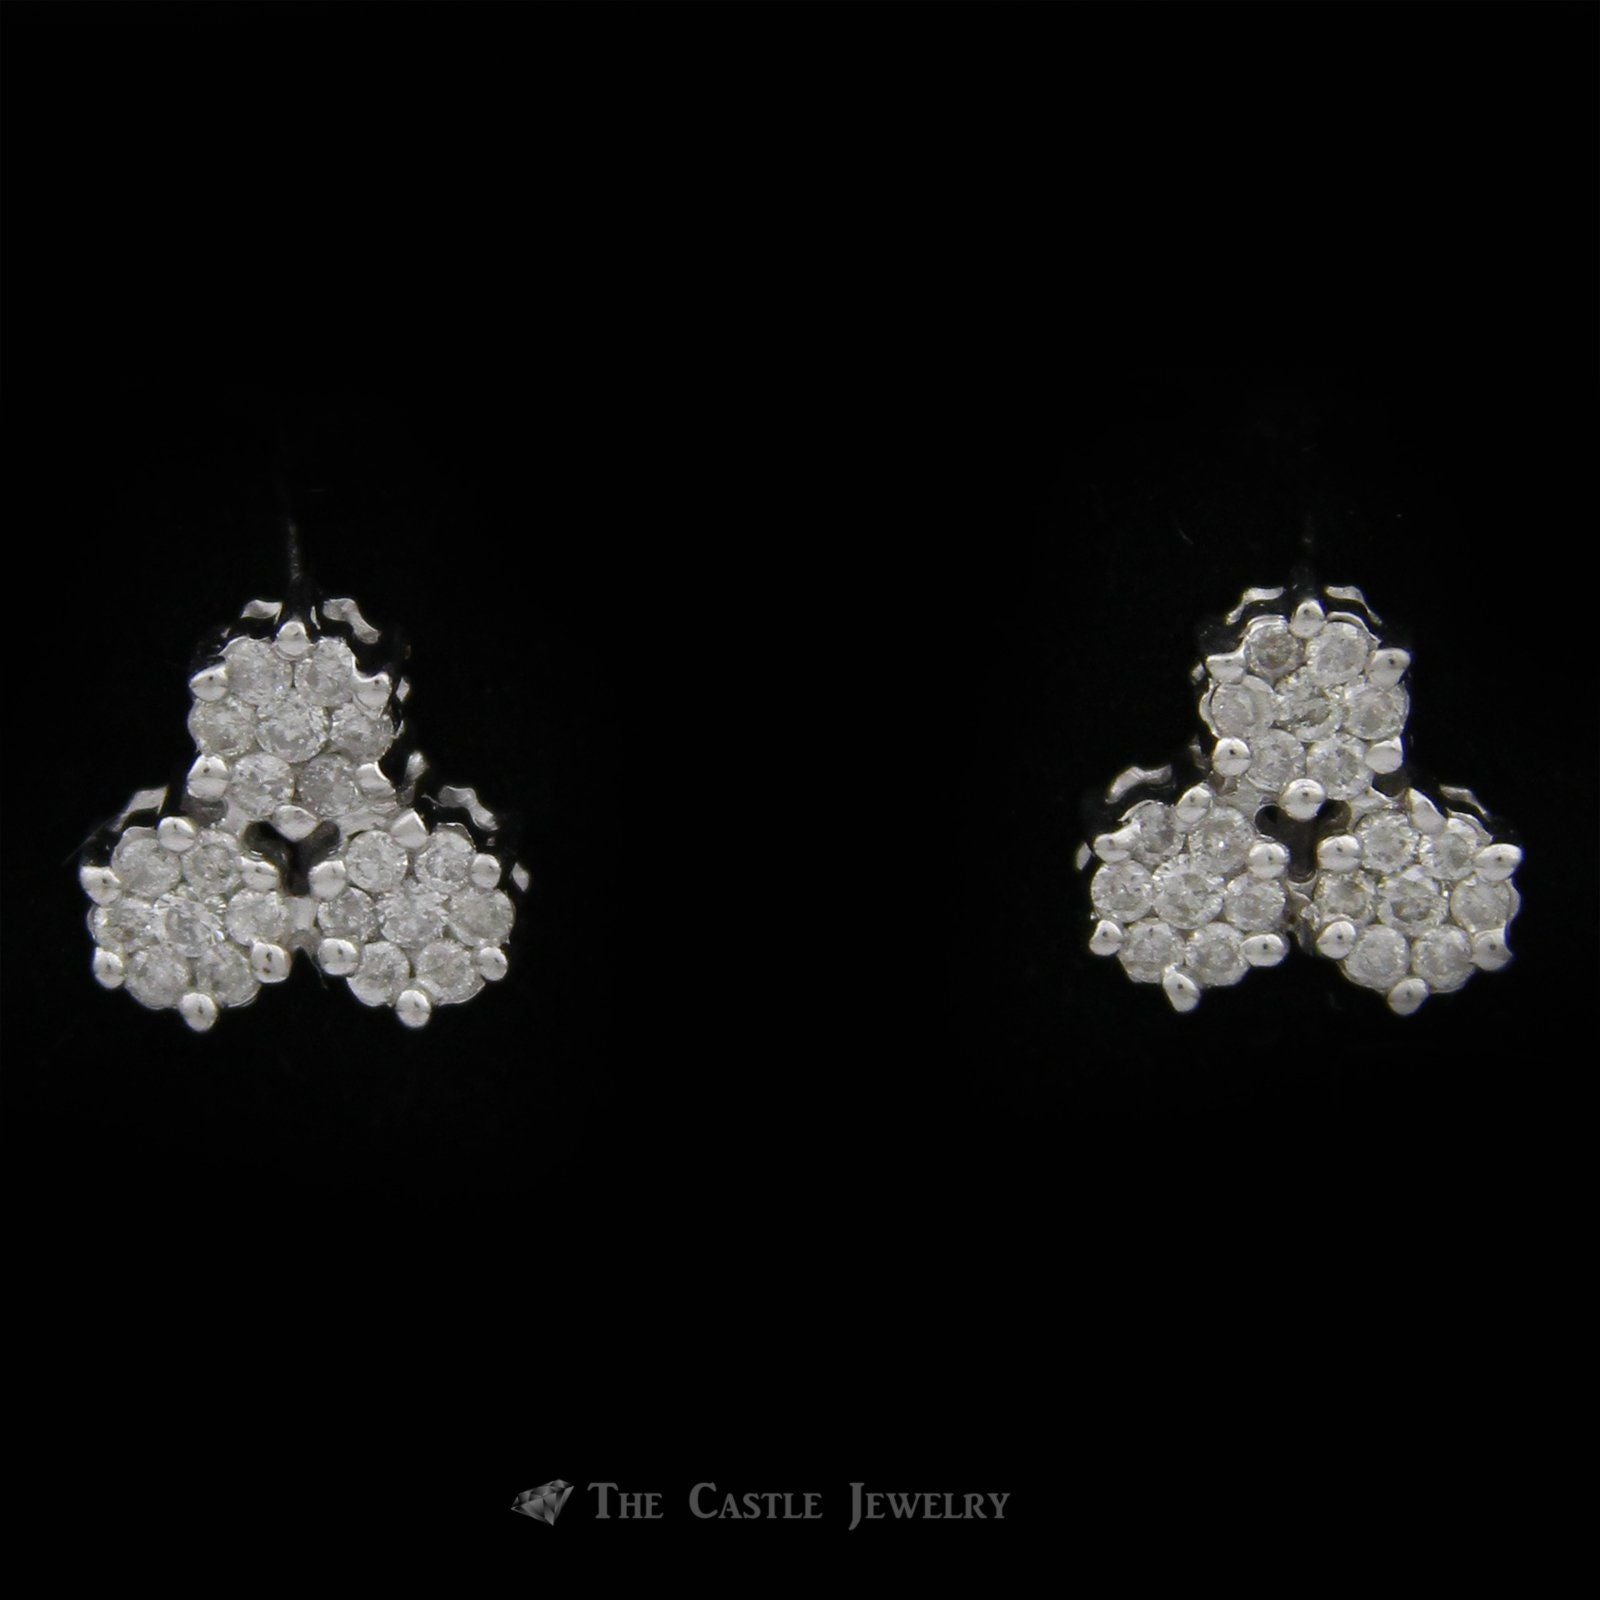 Triple Round Cluster Stud Earrings w/ .50cttw Round Diamonds & Butterfly Backs in 10k White Gold